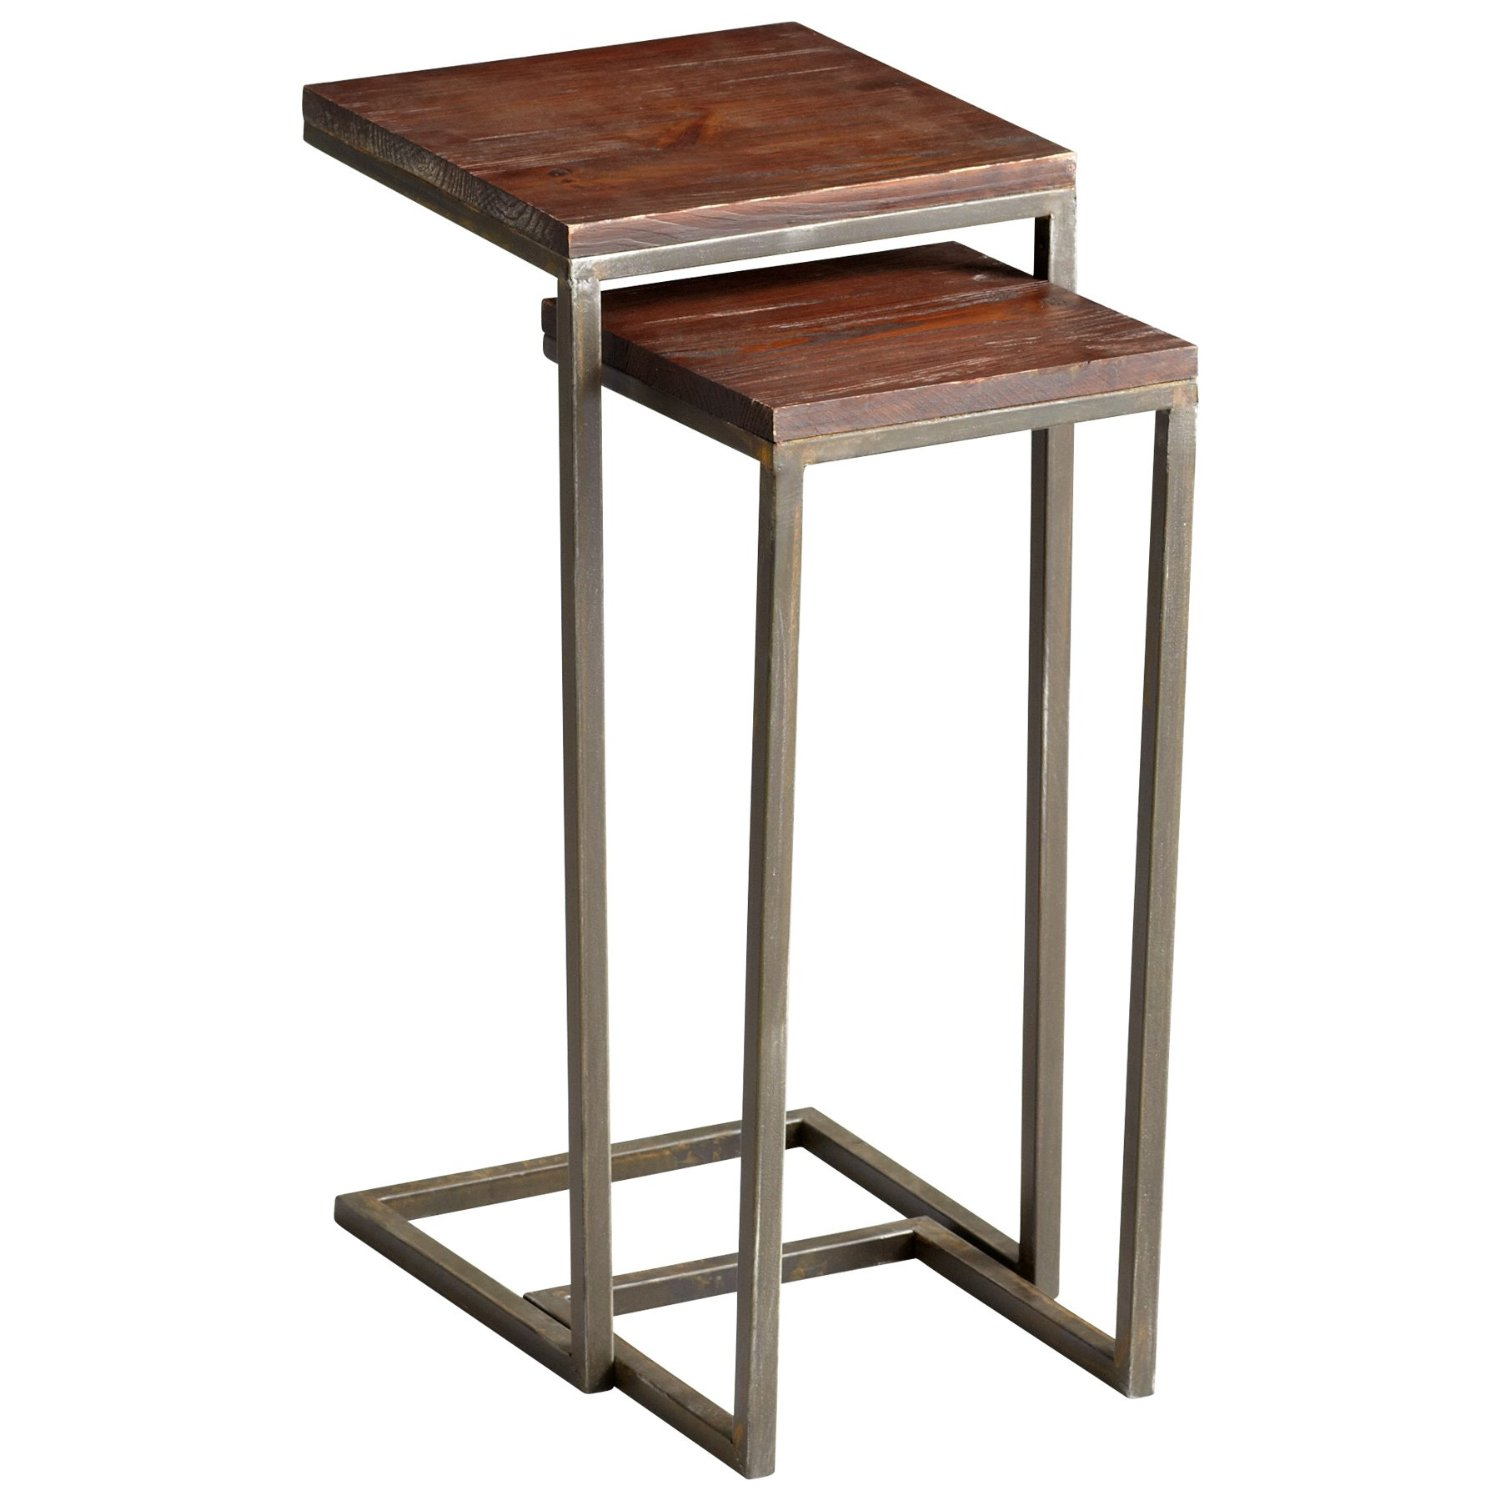 contemporary accent tables find get quotations iron wood nesting set two tier antique table ikea dining furniture modern floor reading lamps multi colored coffee target high and